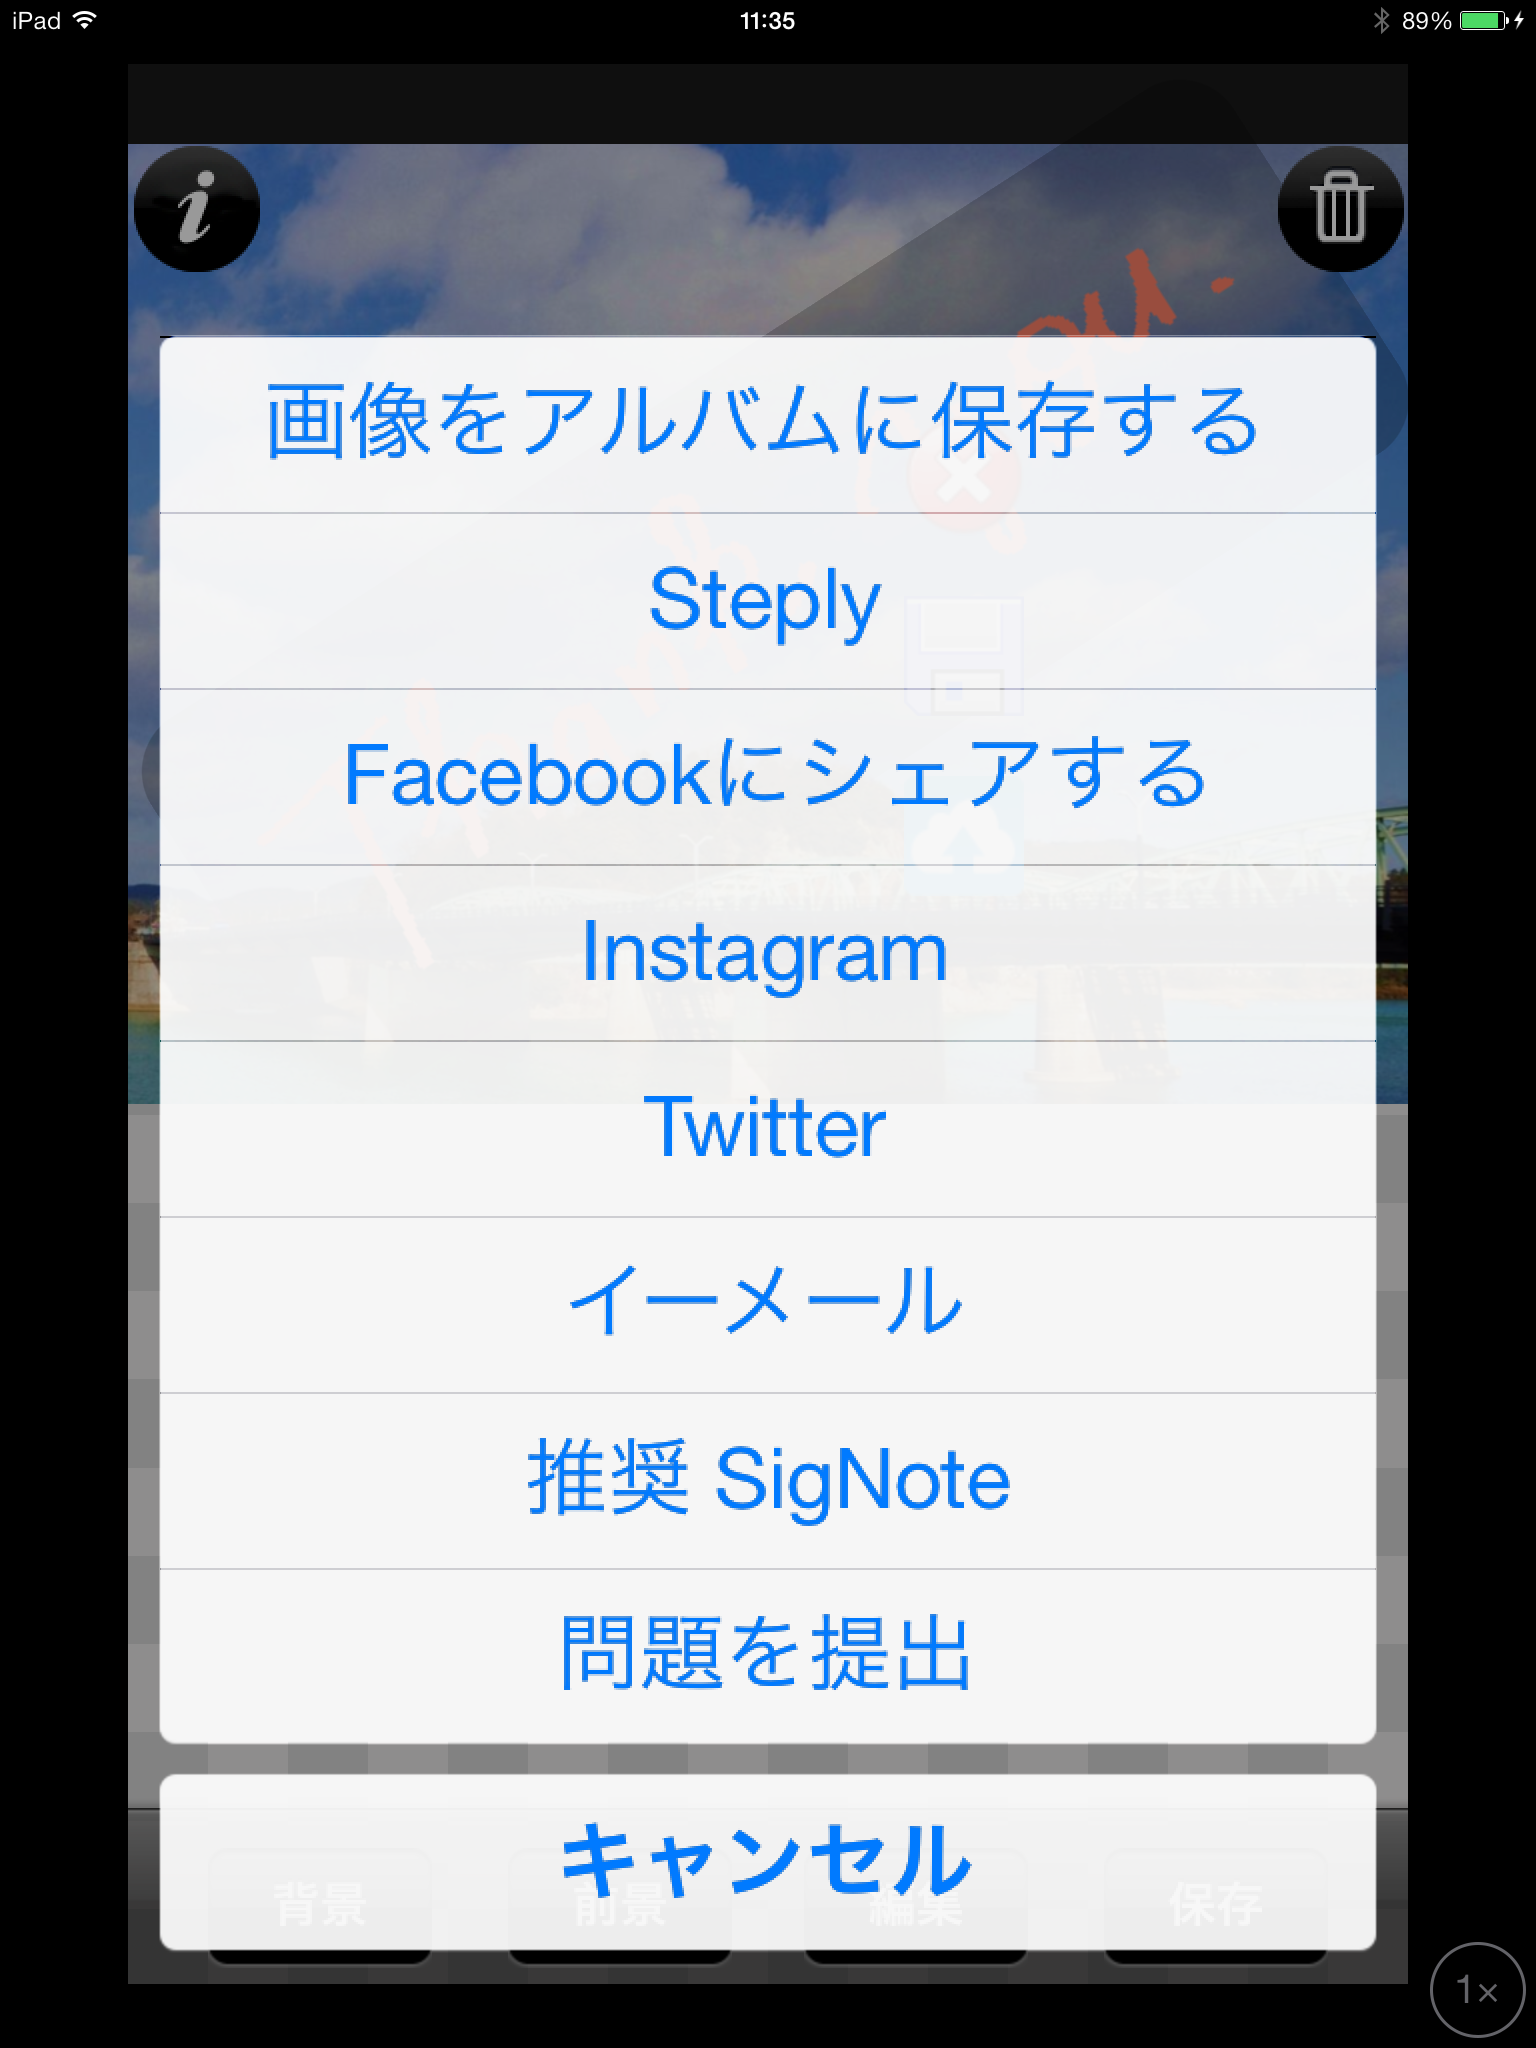 SigNote – Personal Touch to Your Photos:少し工夫を凝らした画像加工がやりたいときにおすすめなアプリ